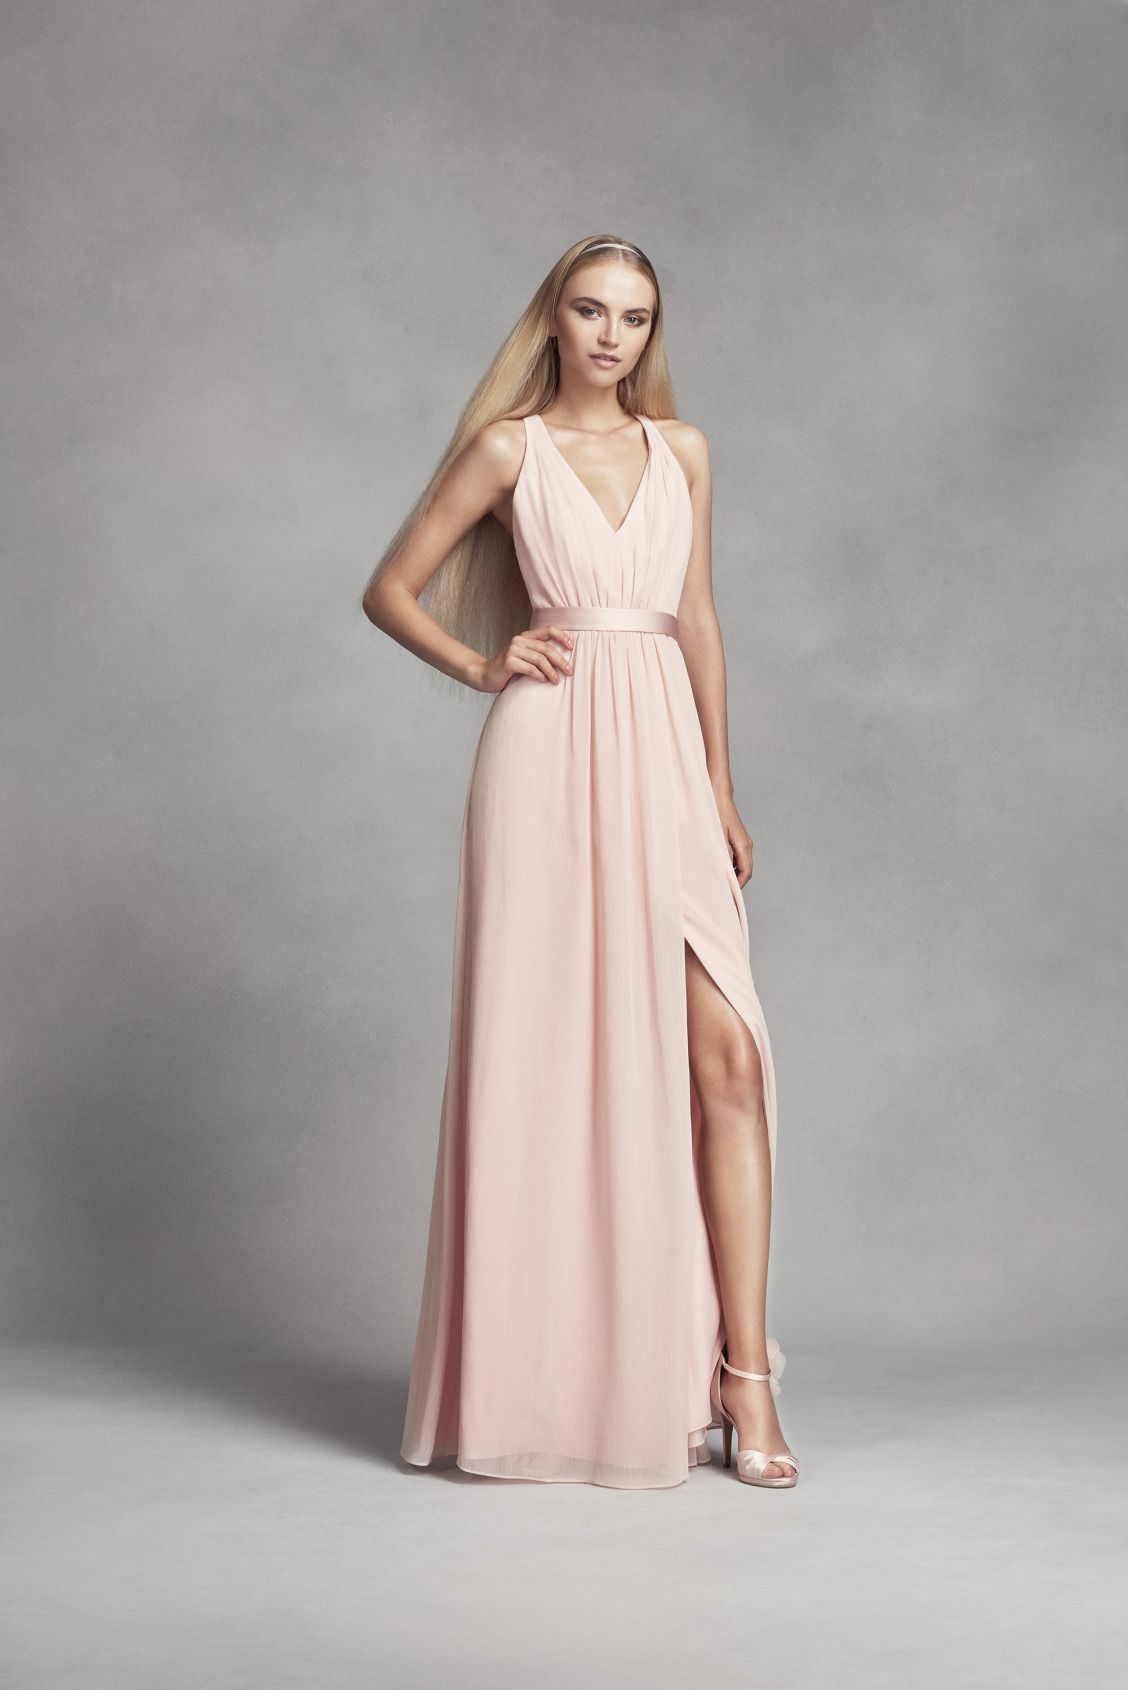 Long Petal Pink Halter Chiffon Dress With Low Crisscross Back White By Vera Bridesmaid